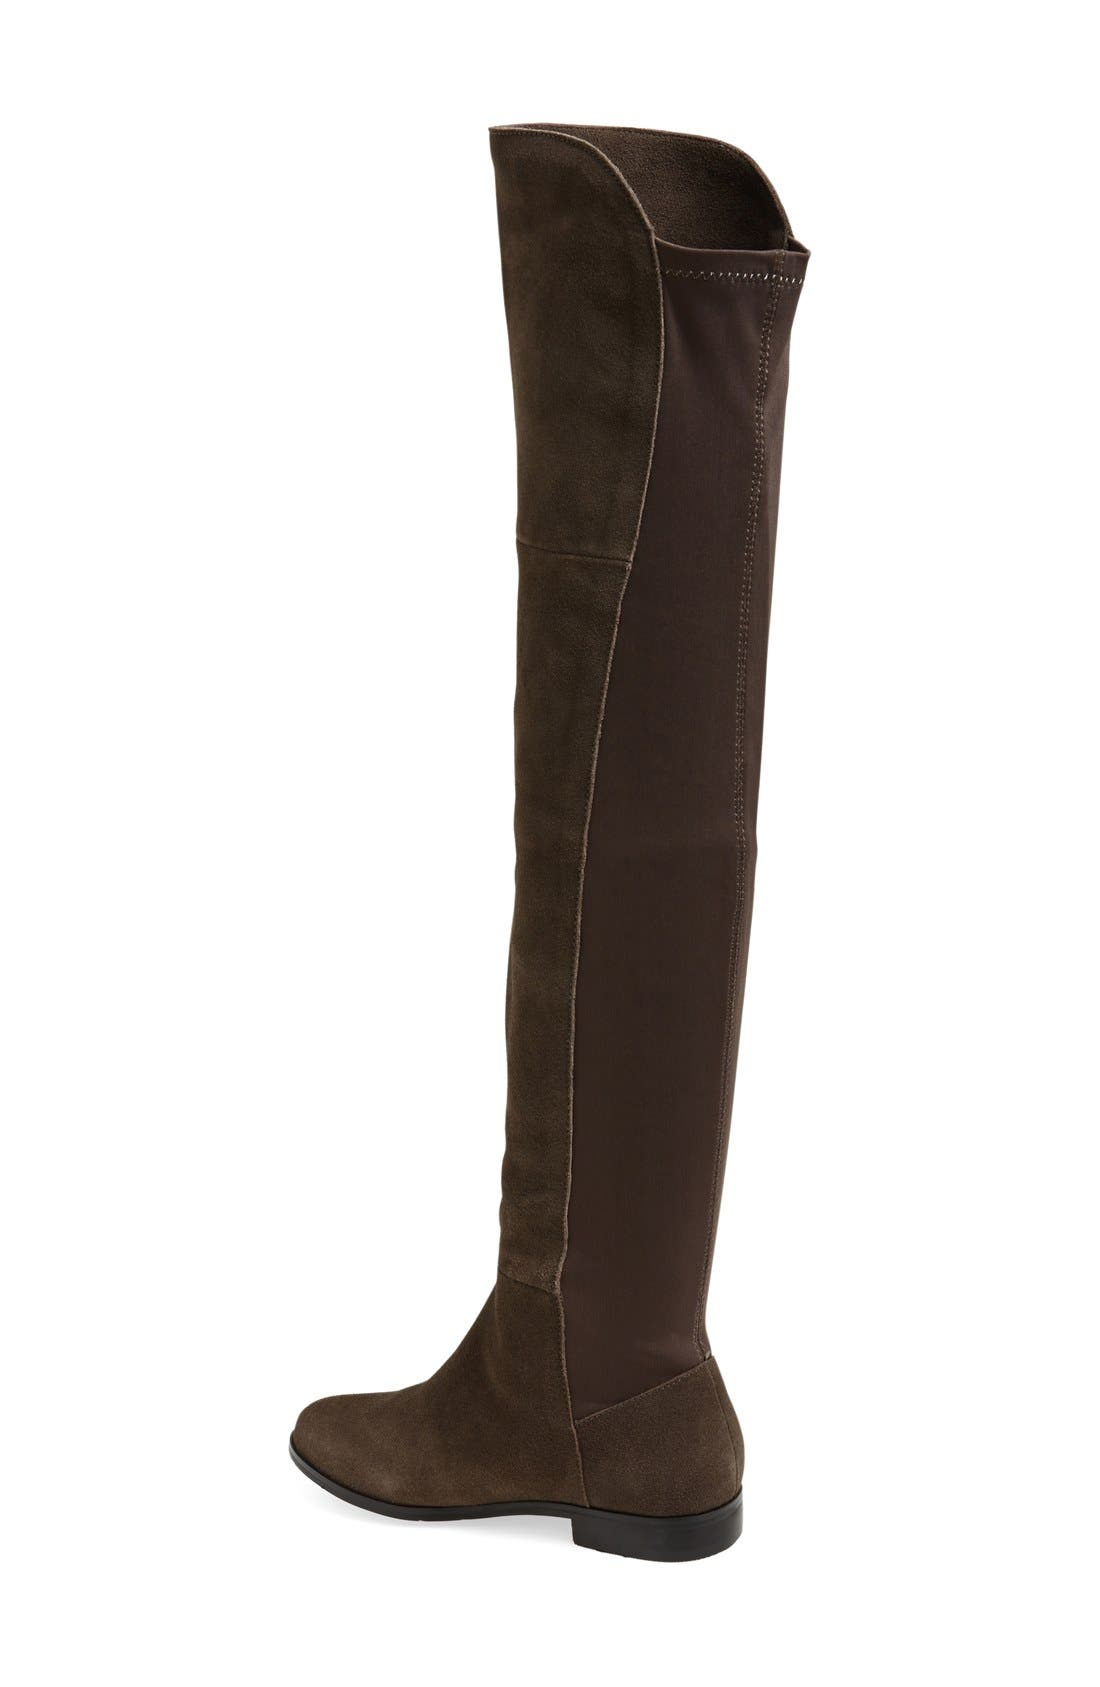 'Radiance' Over The Knee Boot,                             Alternate thumbnail 4, color,                             031